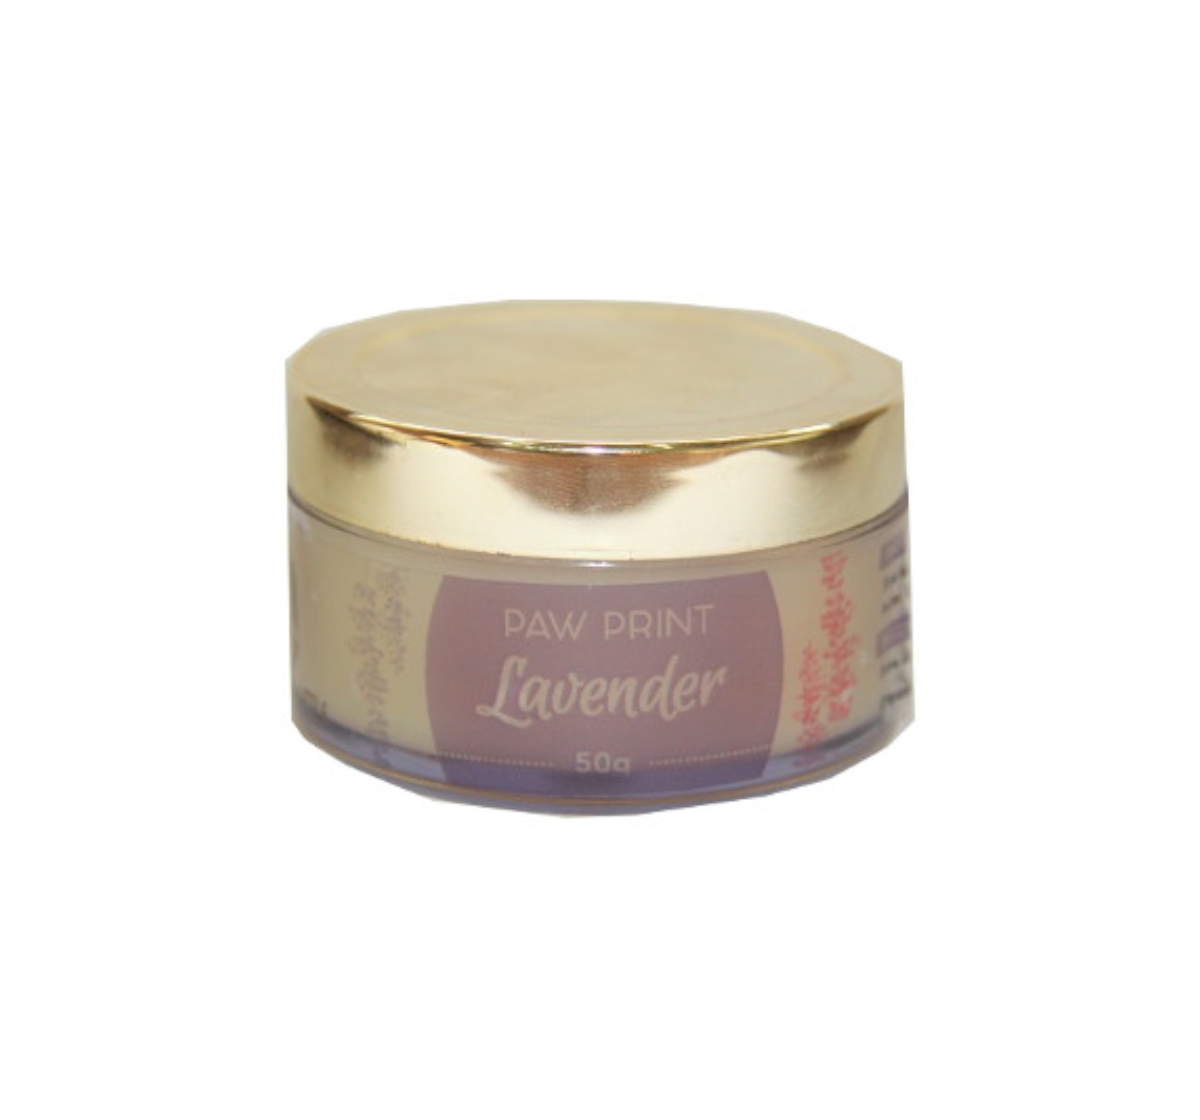 Paws A Little Lavender Paw Cream - 50 gm